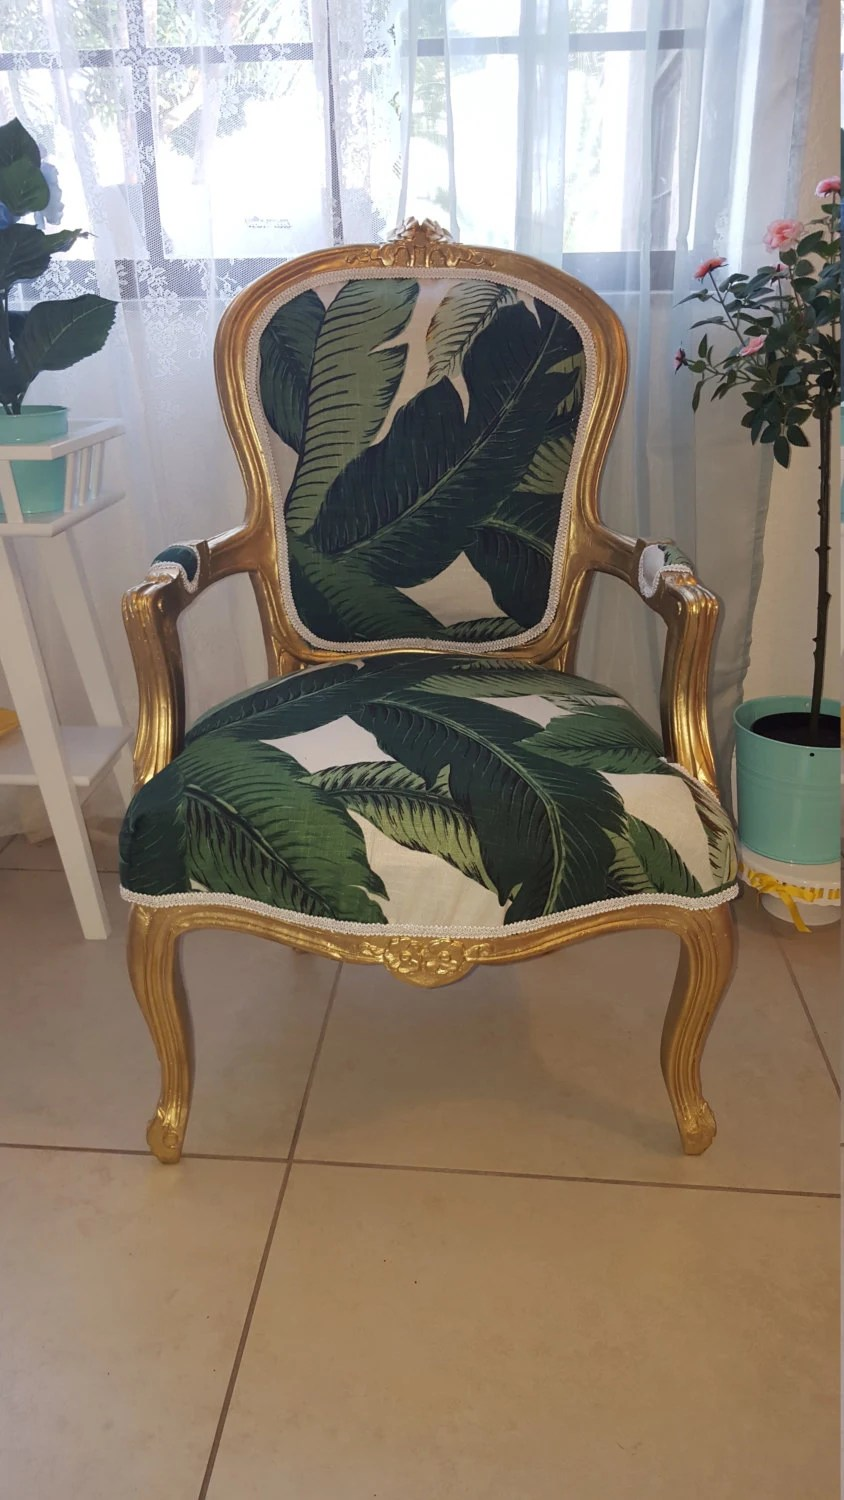 Antique Accent Chairs Chair Antique Louis Xv Accent Chair Gold Frame And Banana Leaf Upholstery Tommy Bahama Fabric